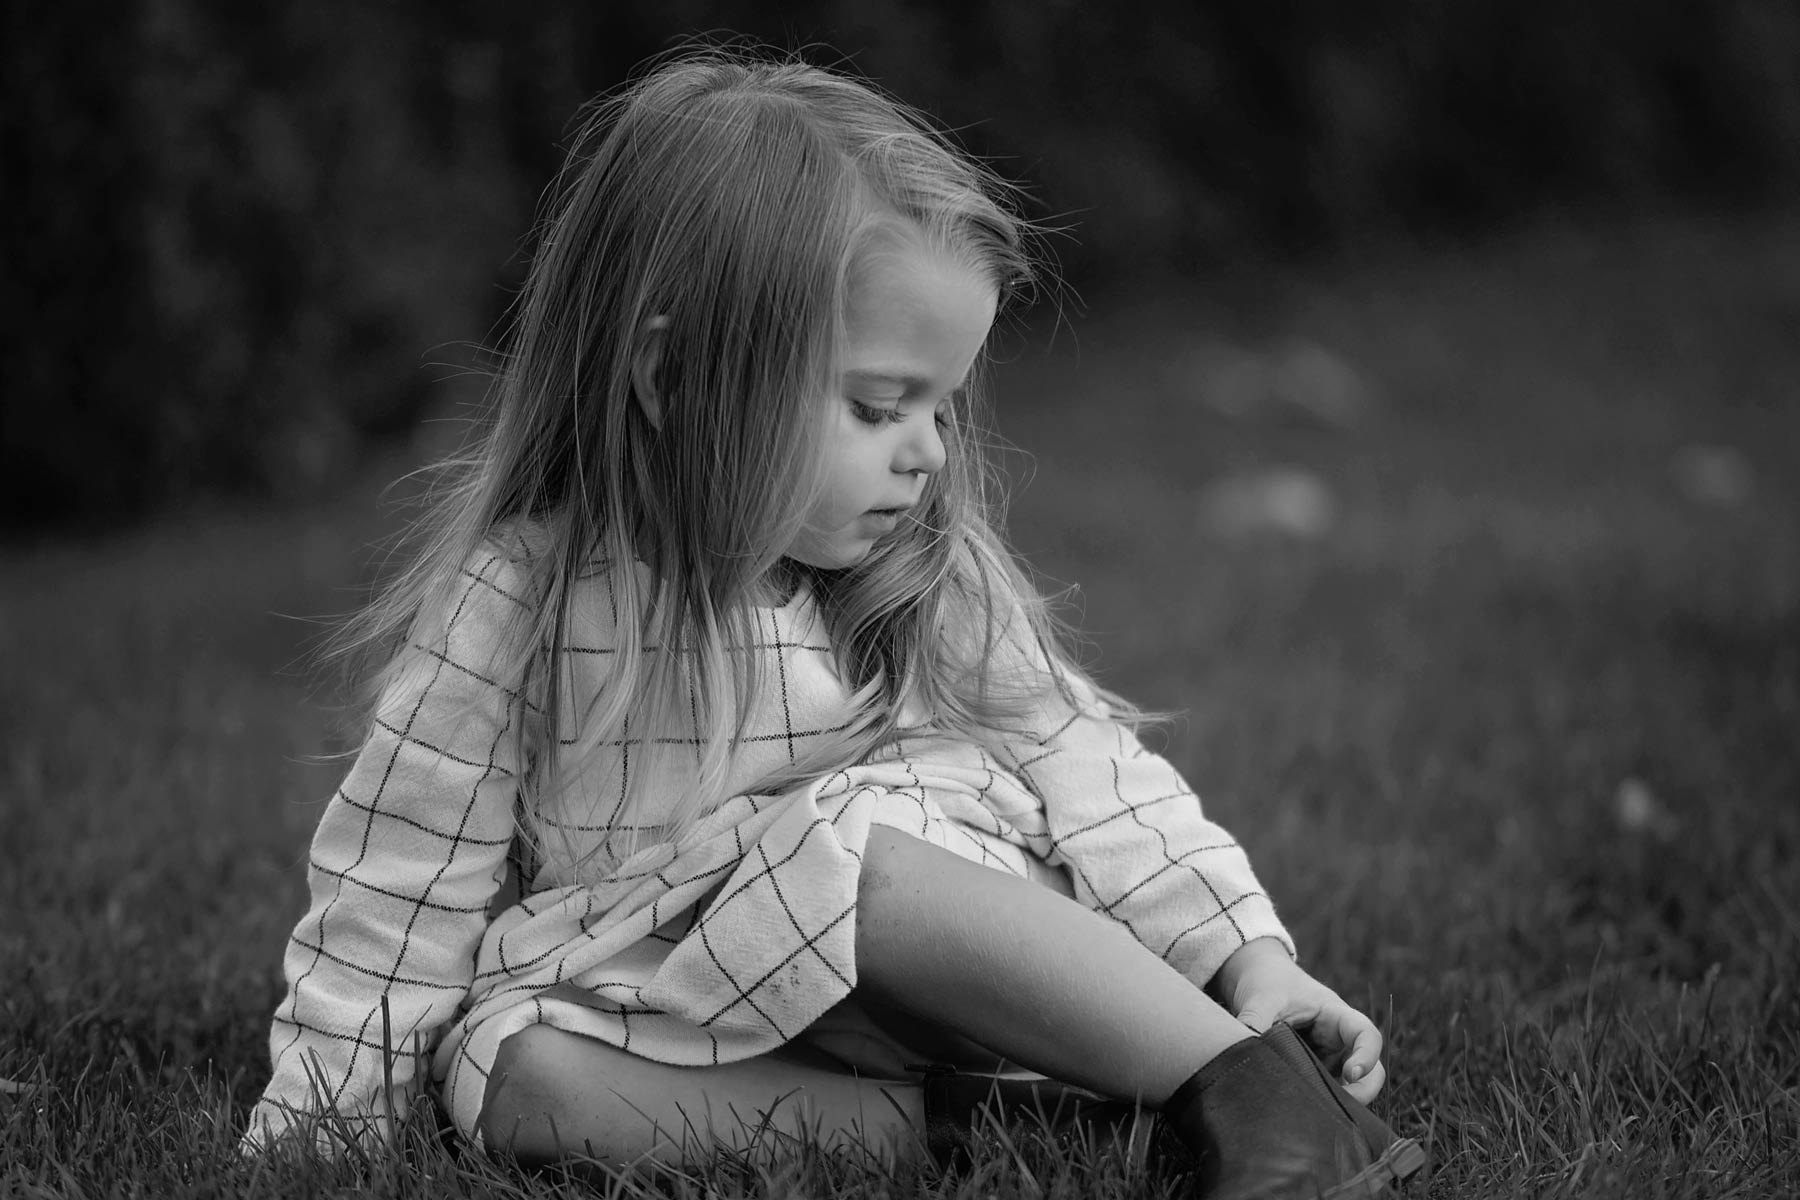 black and white image of 2 year old girl sitting and touching her shoe